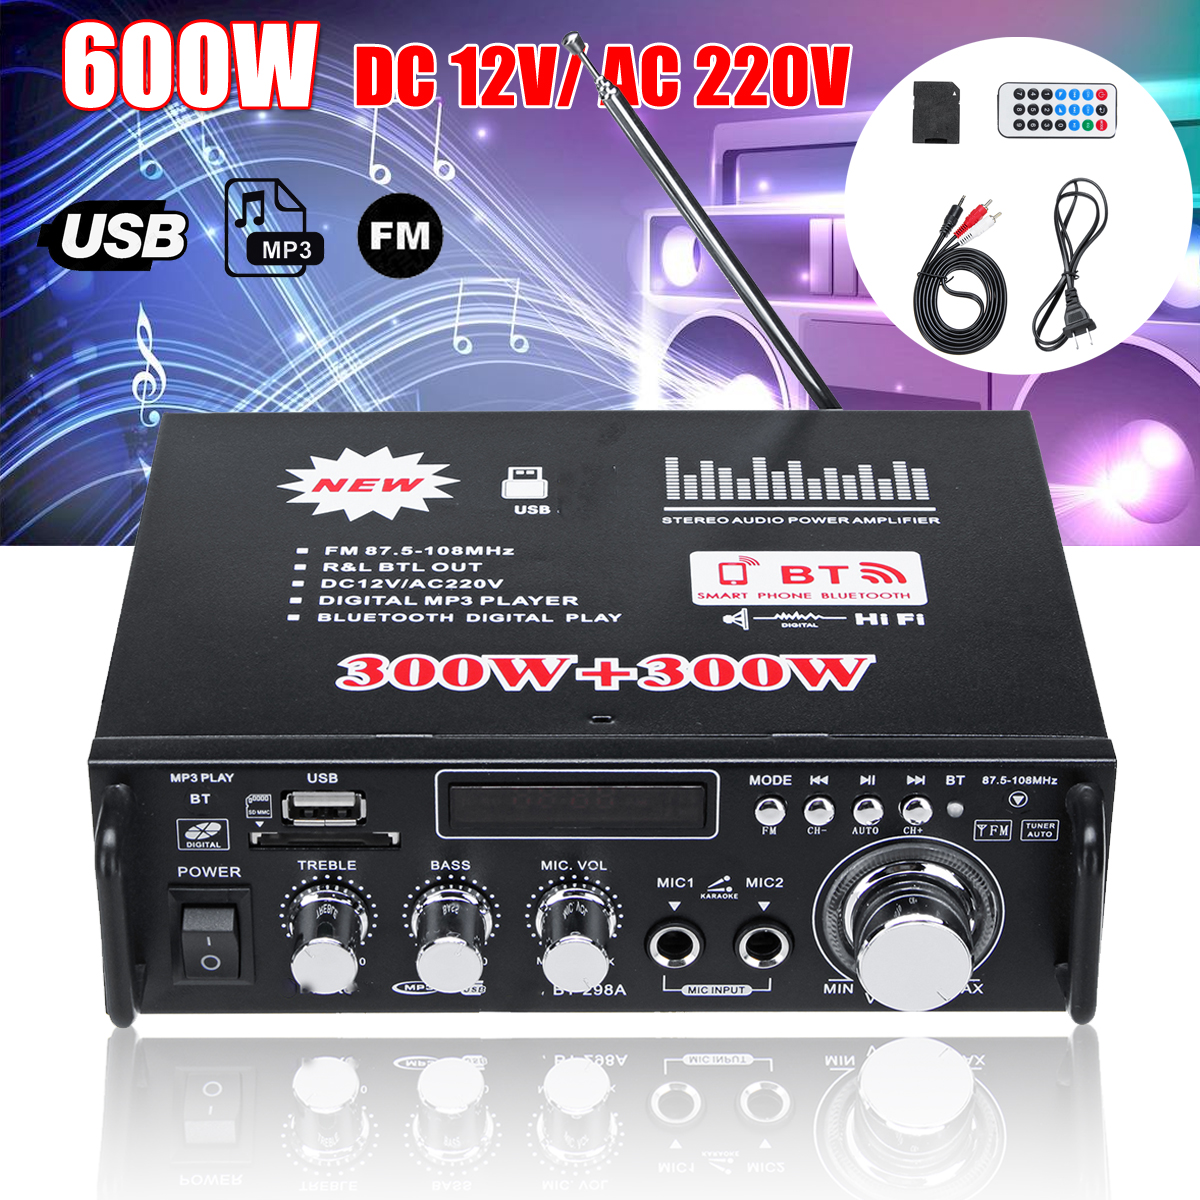 600W 12V 220V USB Car Bluetooth HiFi Stereo Audio Power Amplifier Remote Control for Car Auto Home Audio USB Flash Disk Radio hifi 2 1 channel edr bluetooth car amplifier subwoofer usb u disk auto stereo audio amplifier with remote control power adapter